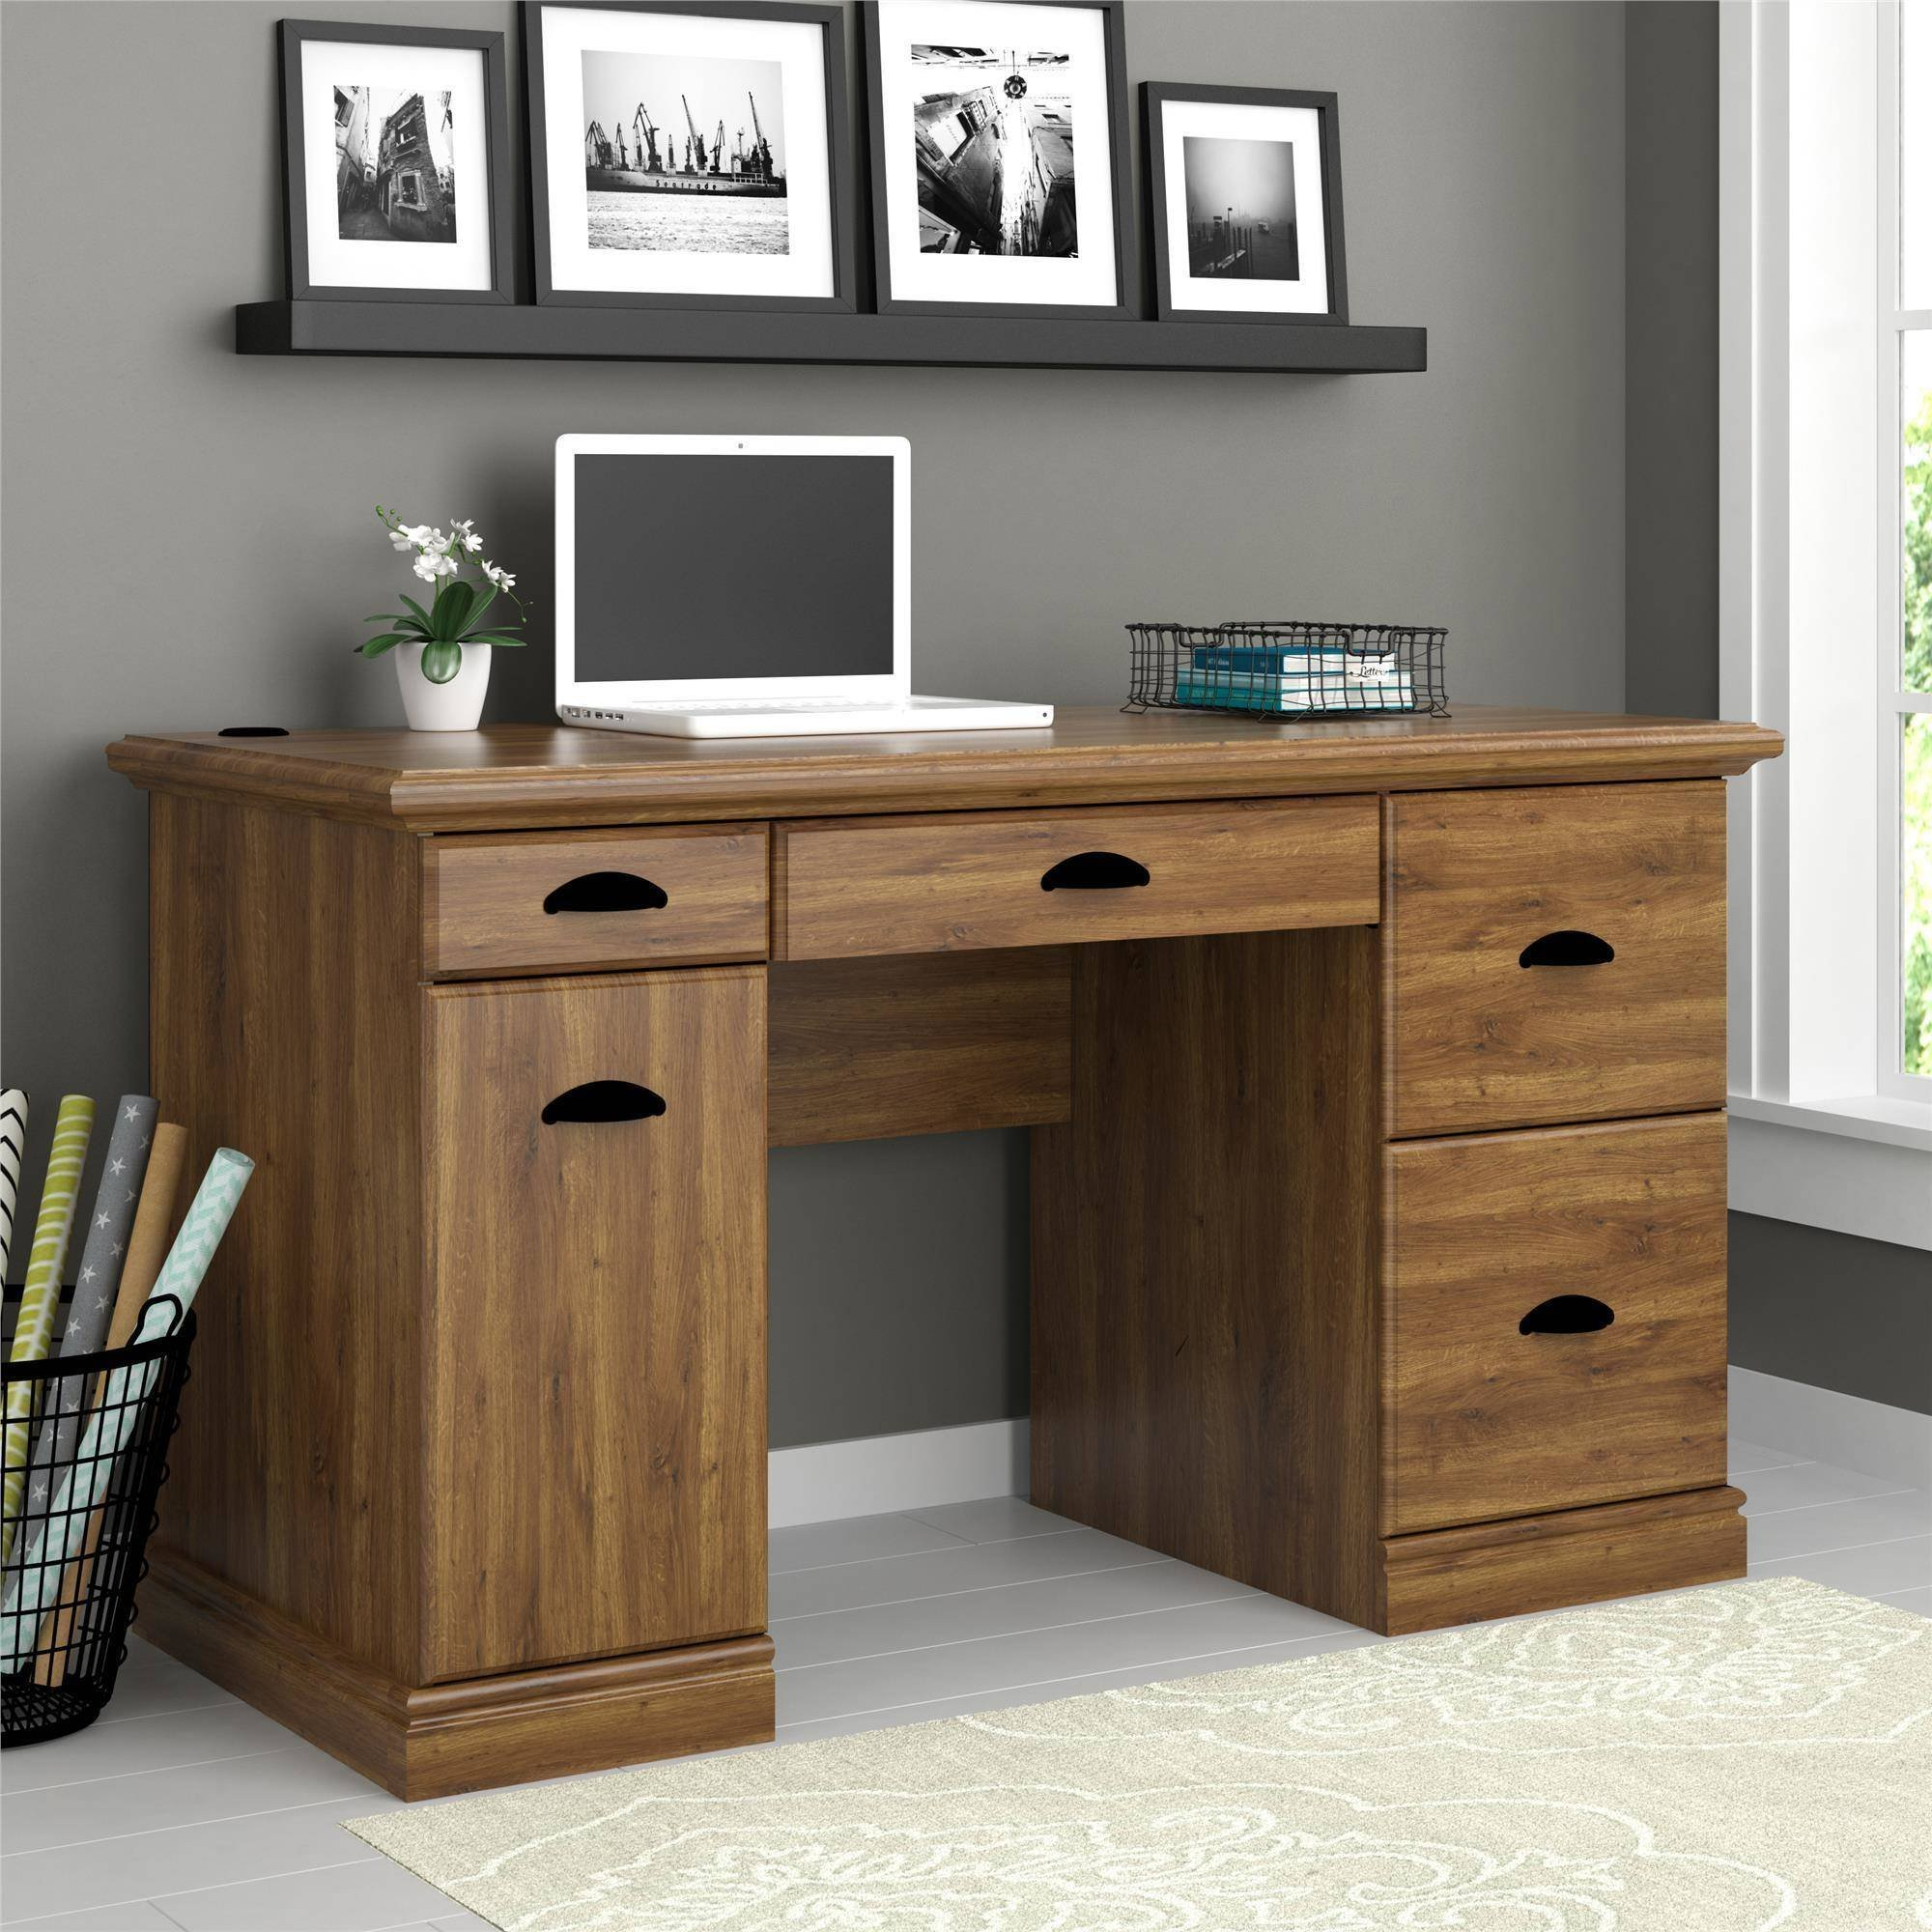 Elegant Wooden Desk in Classic Vintage Design with Multiple Storage Drawers and Trays, Large Workstation, Sophisticated Antique Look is Perfect Addition in Home and Office (Abby Oak)